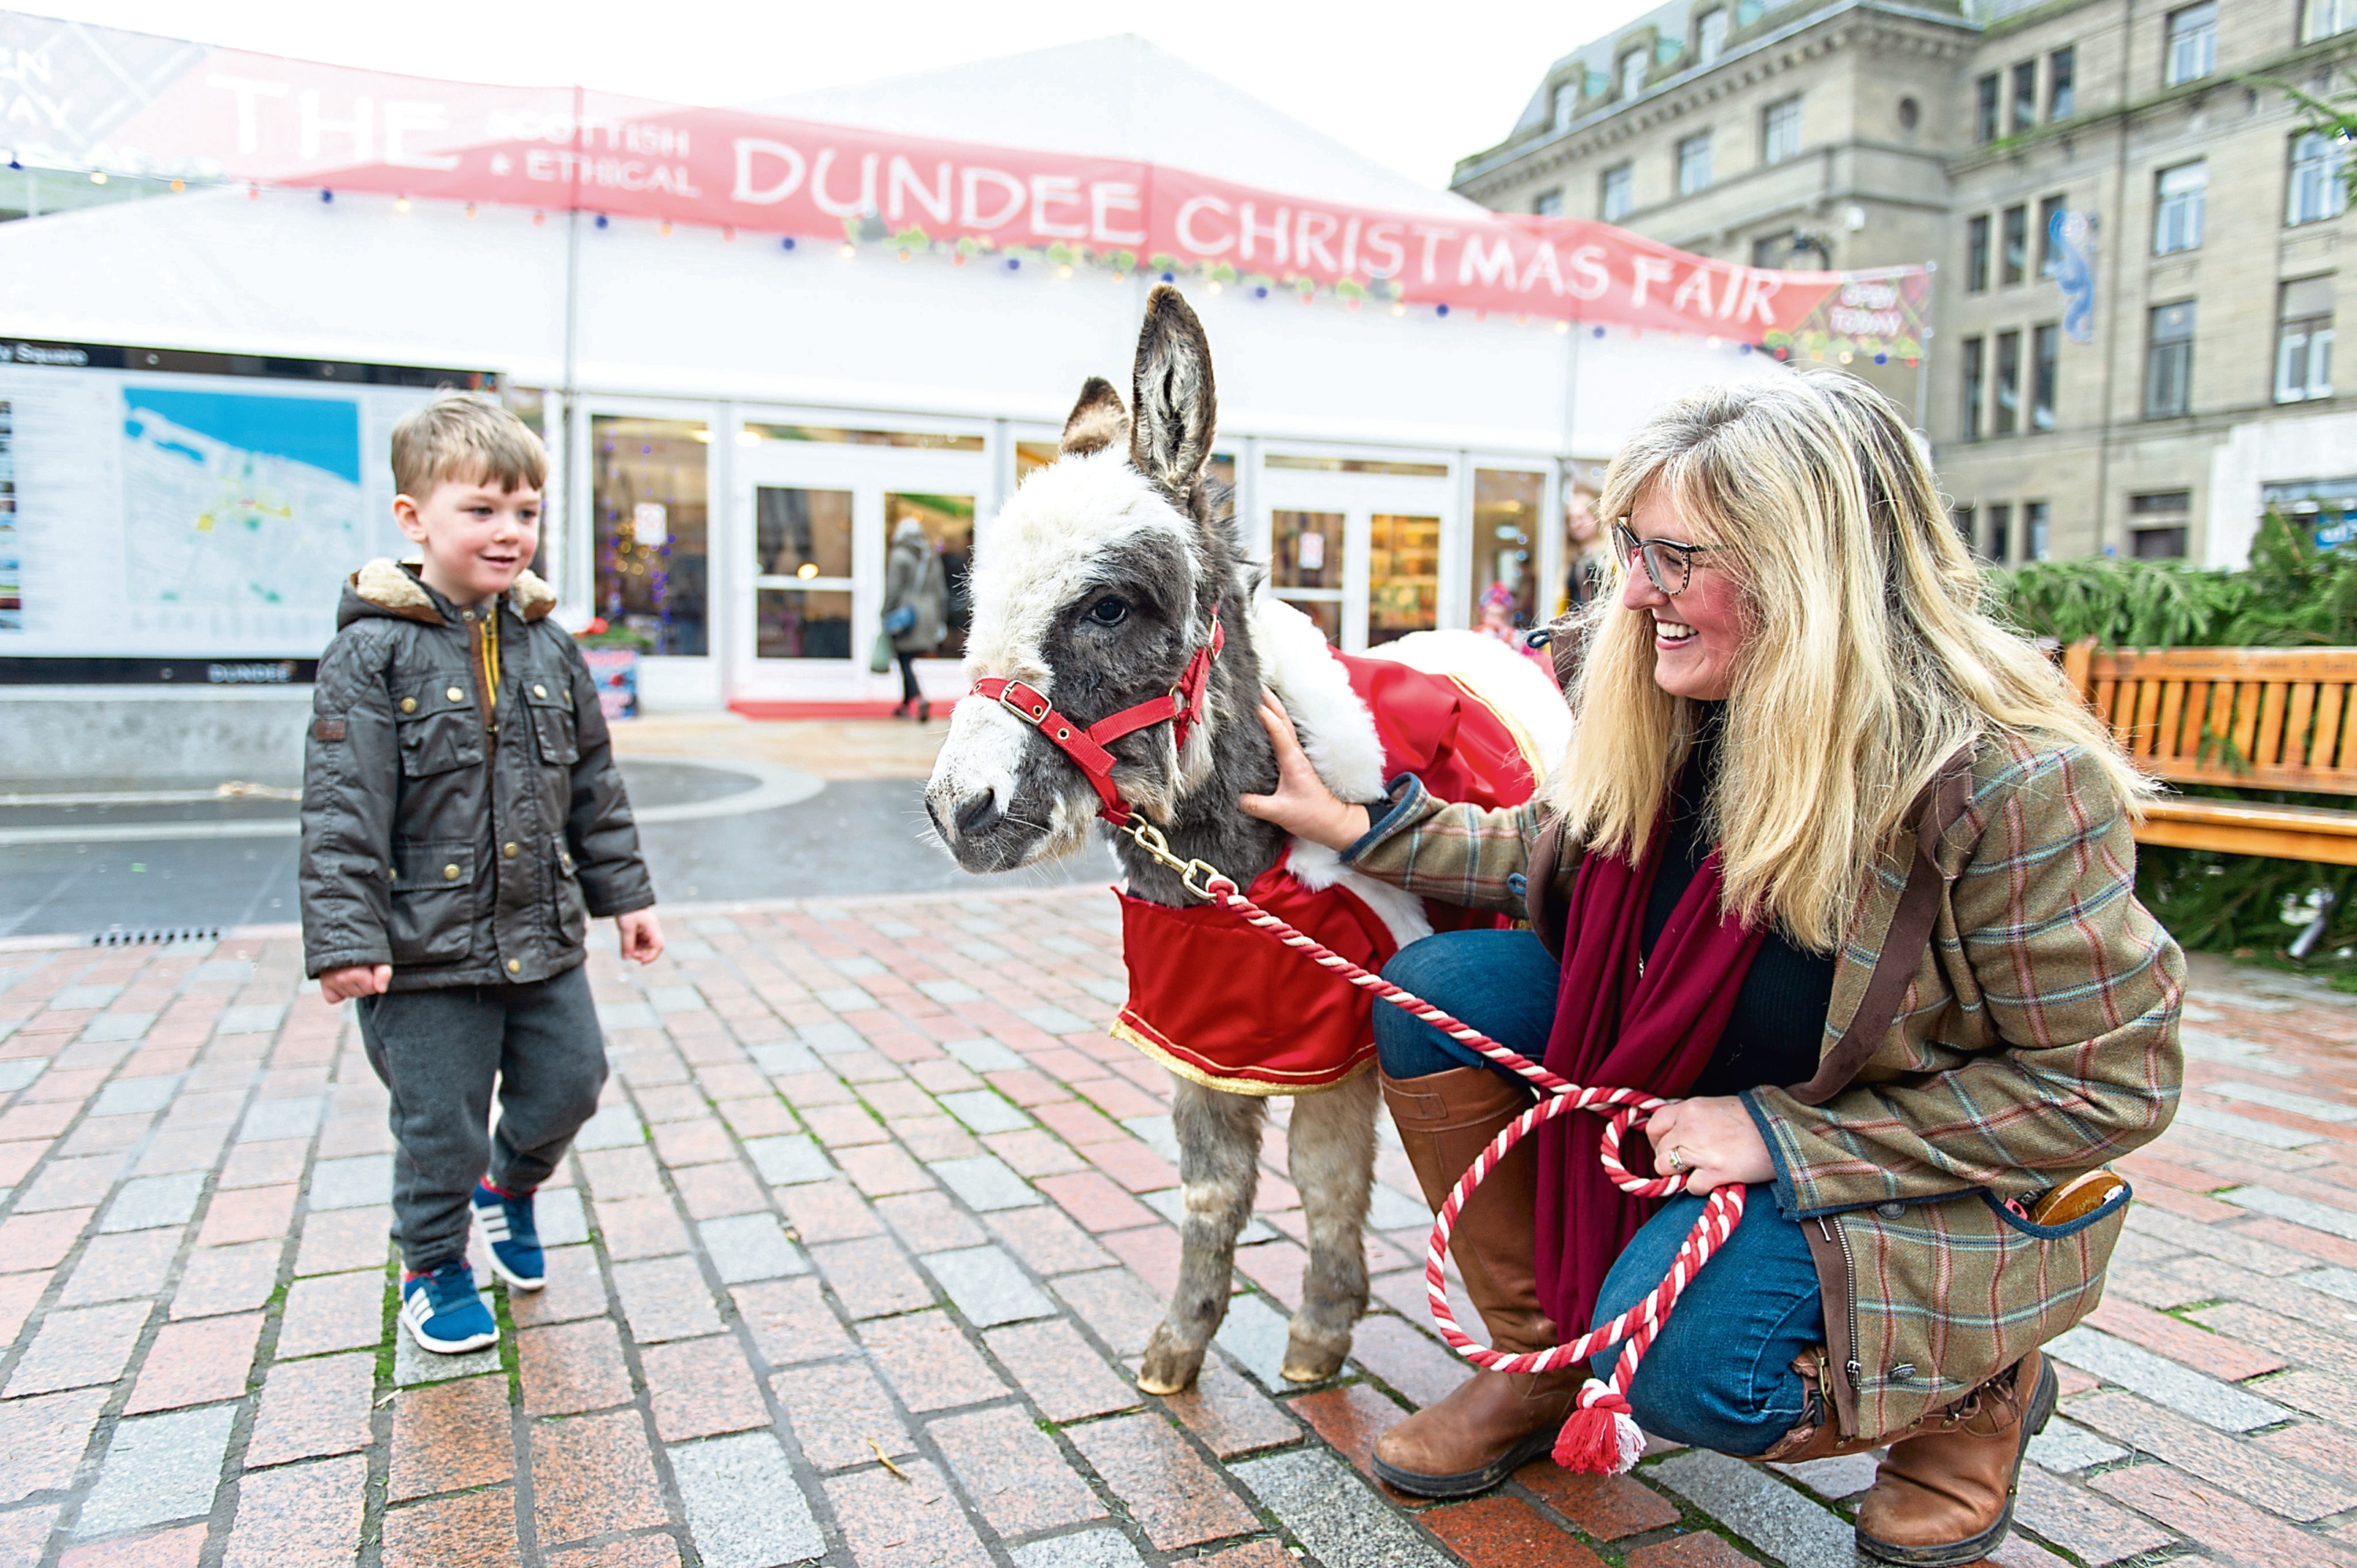 Little Donkey and Alison Wiseman greet Rory Clark, 4, at the door of the Ethical Christmas Fair in 2018.  Council leader John Alexander has called for more entertainment to be provided using the council's festive budget.